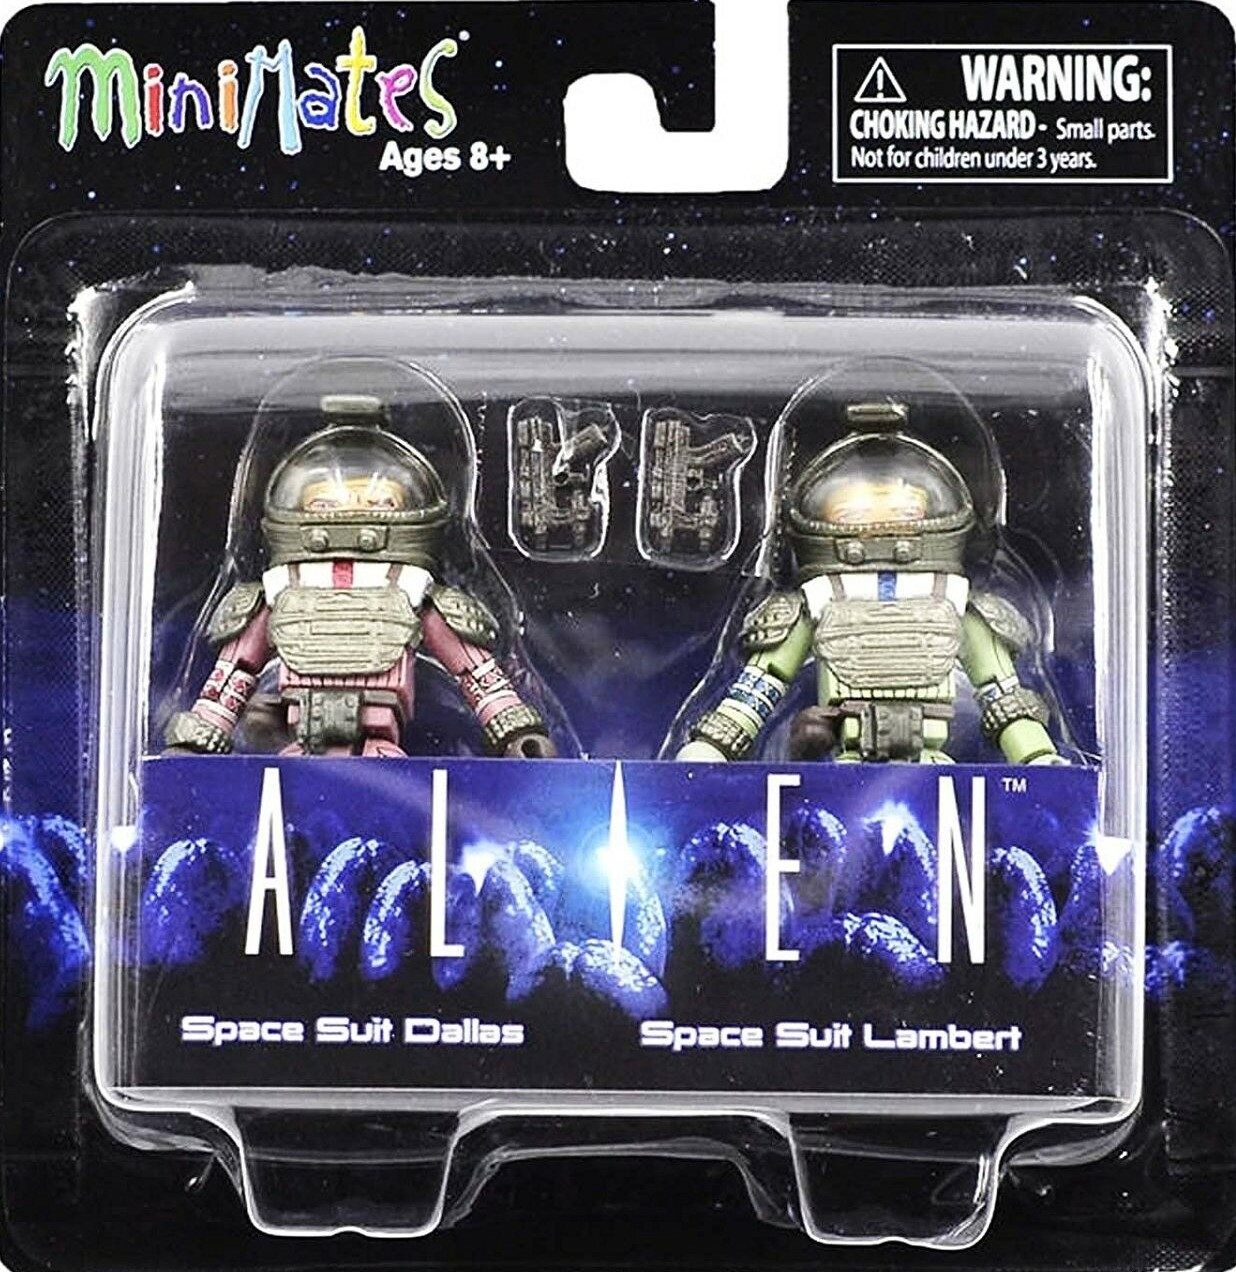 ALIENS MINIMATES SERIES 3 ASST SPACE SUIT DALLAS/SPACE SUIT LAMBERT